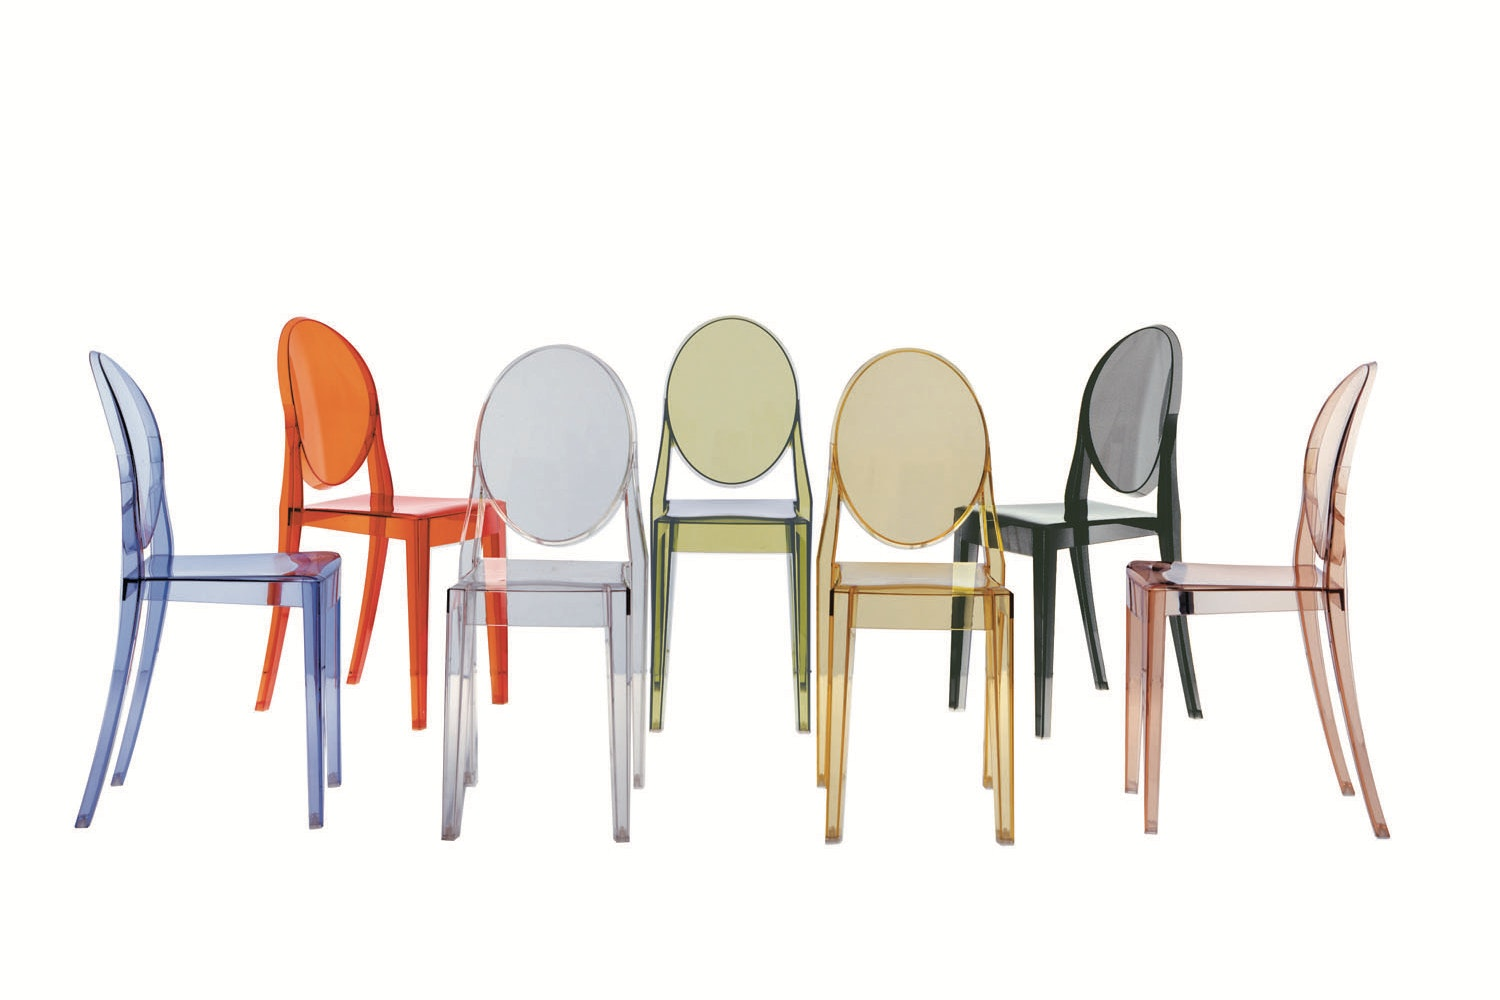 Victoria Ghost Chair by Philippe Starck for Kartell  : KartellVictoriaGhost01 from www.spacefurniture.com.sg size 1500 x 1000 jpeg 62kB